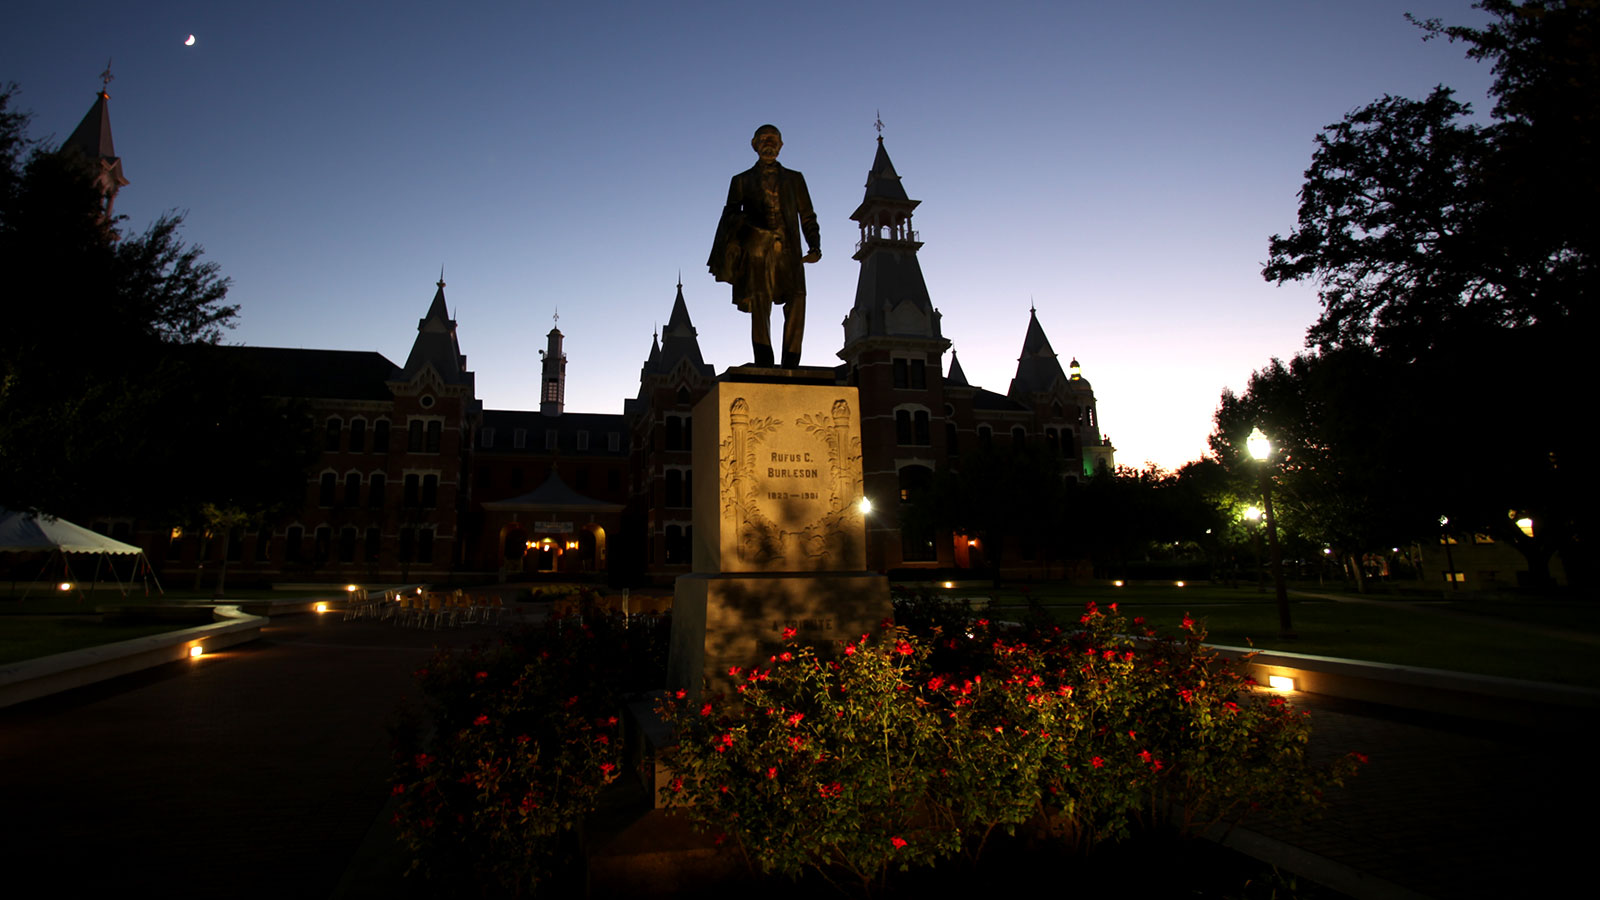 Few locations at Baylor are more beautiful or more photographed than Burleson Quadrangle.